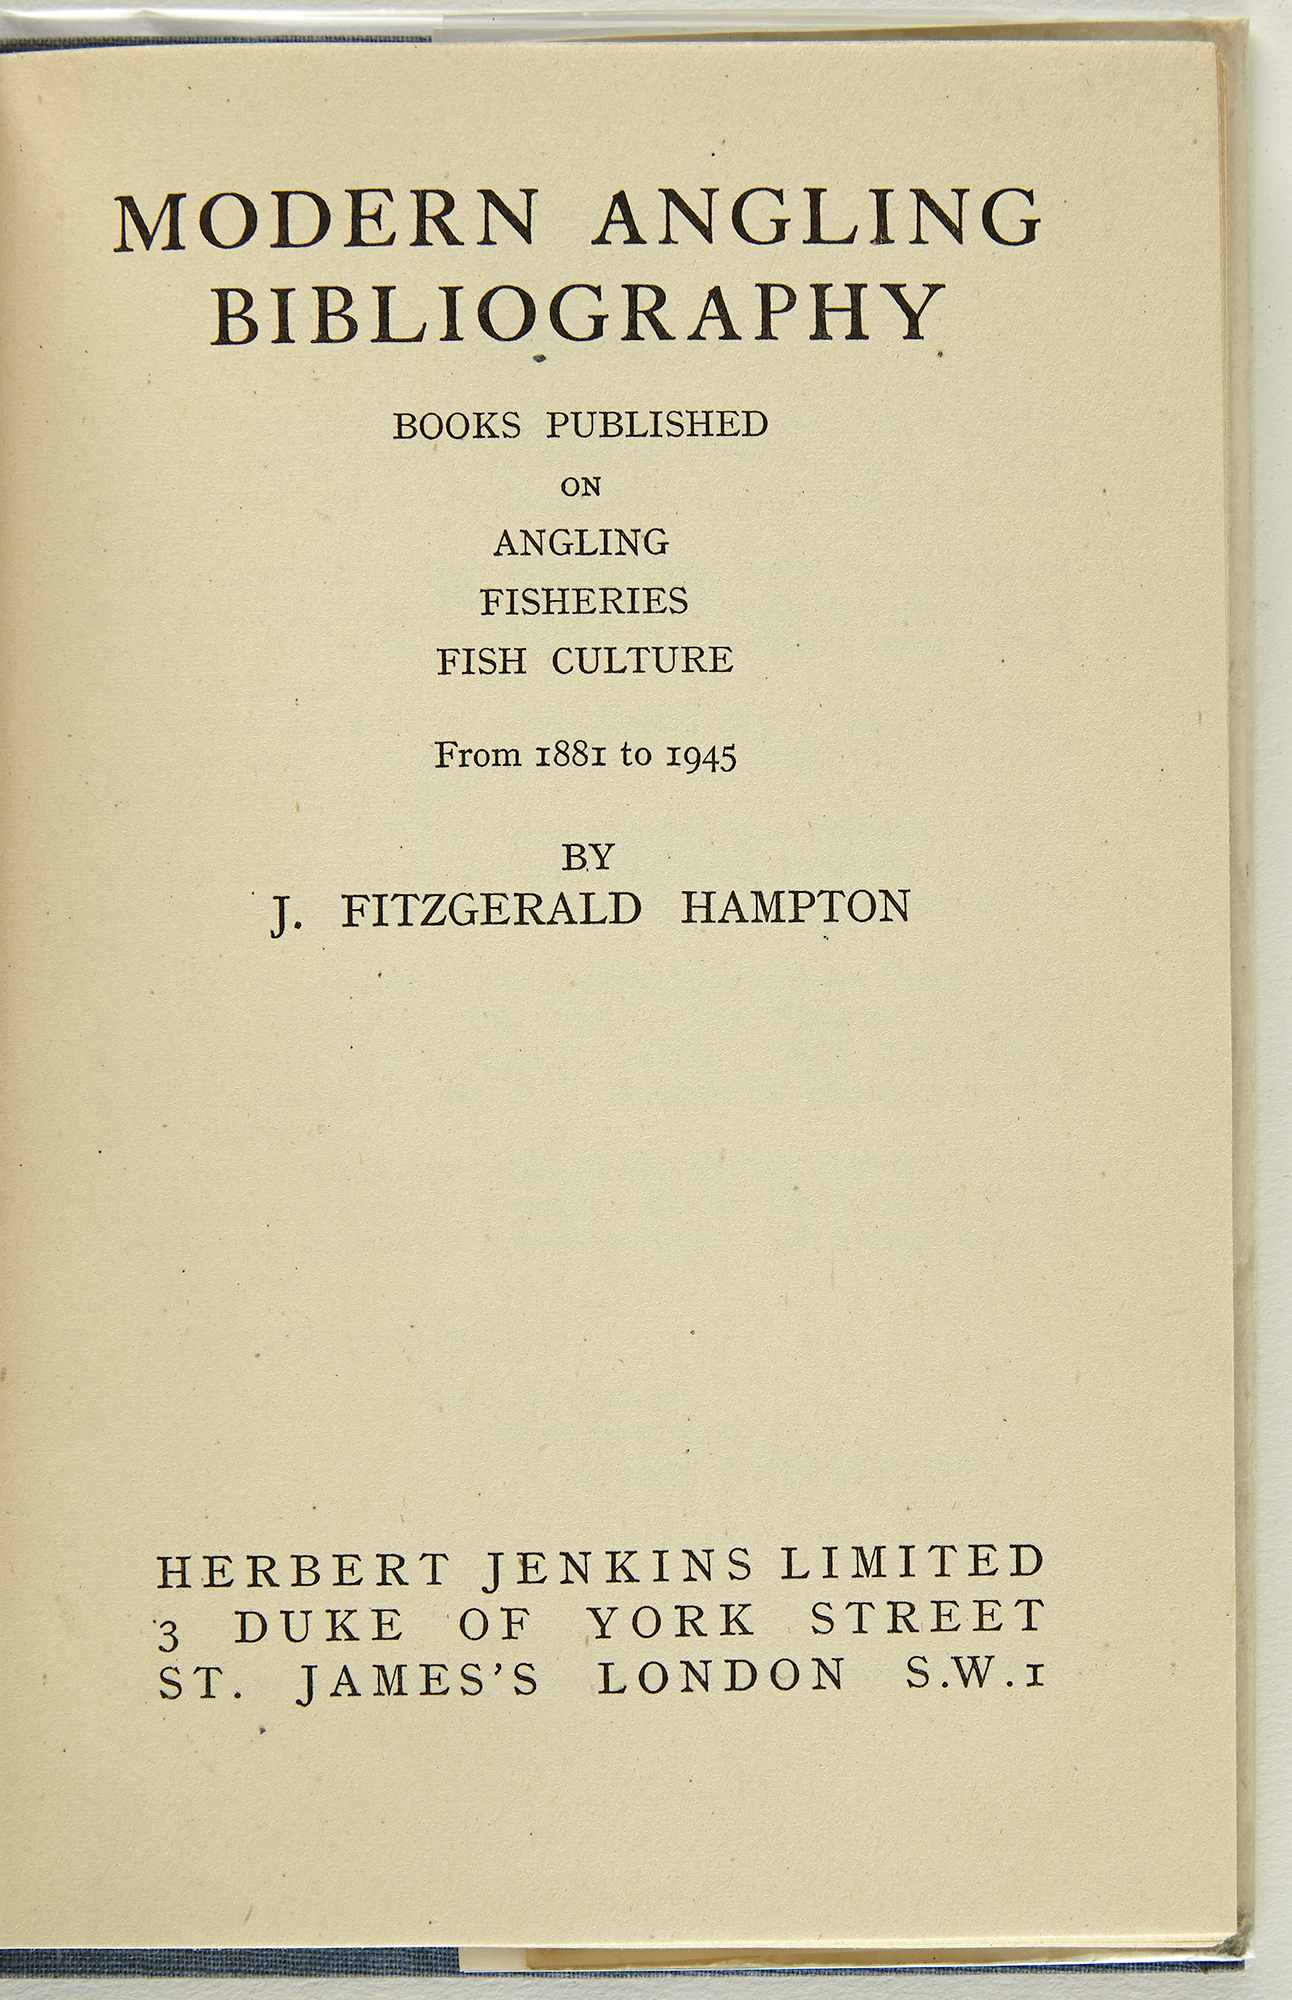 Lot image - [ANGLING]  HAMPTON, J. FITZGERALD. Modern Angling Bibliography; Books Published on Angling, Fisheries, Fish Culture from 1881 to 1945.